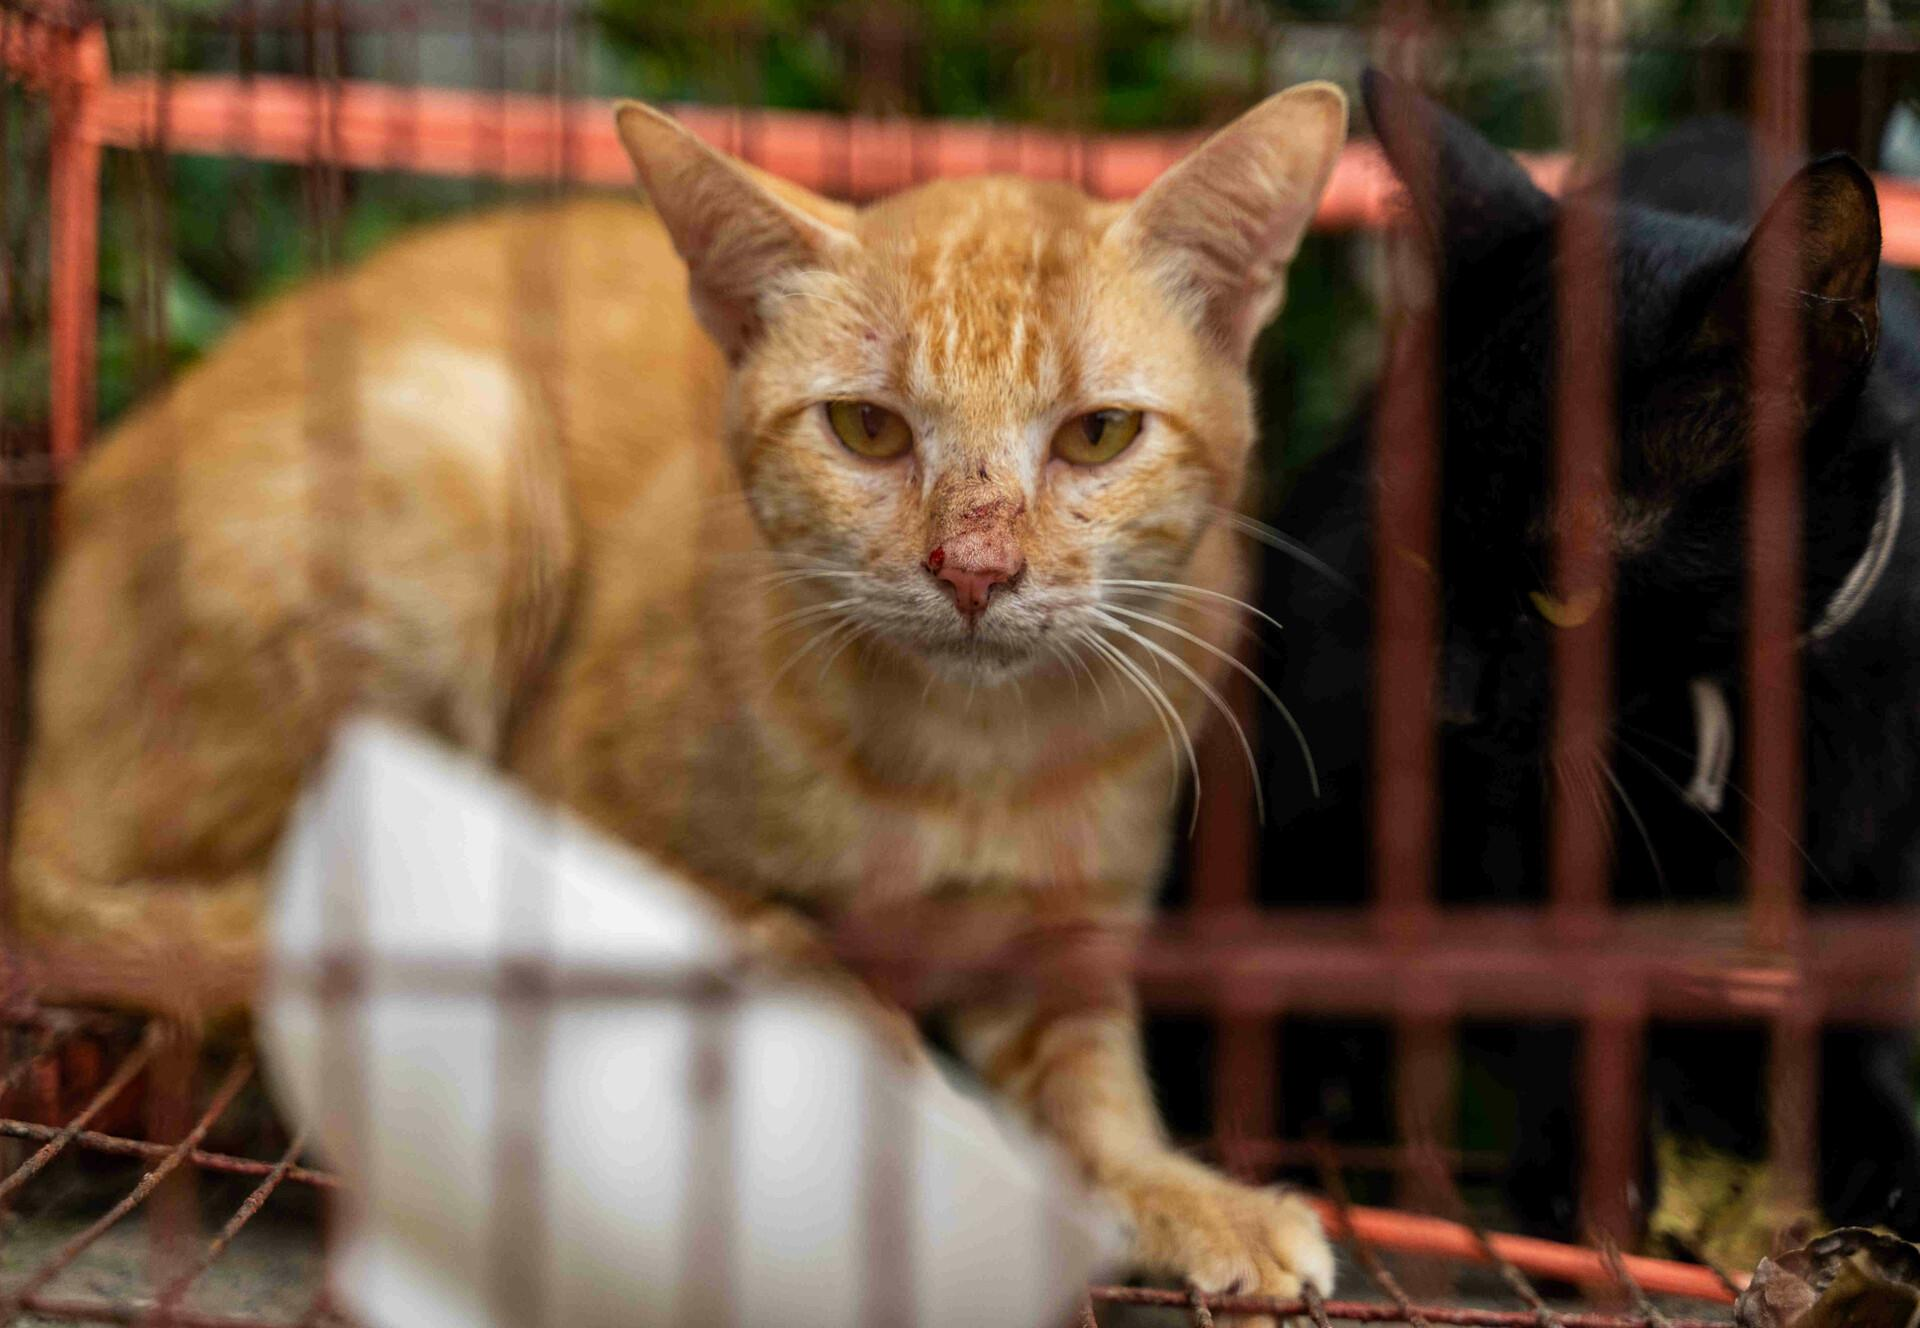 Pitiful cats in cages